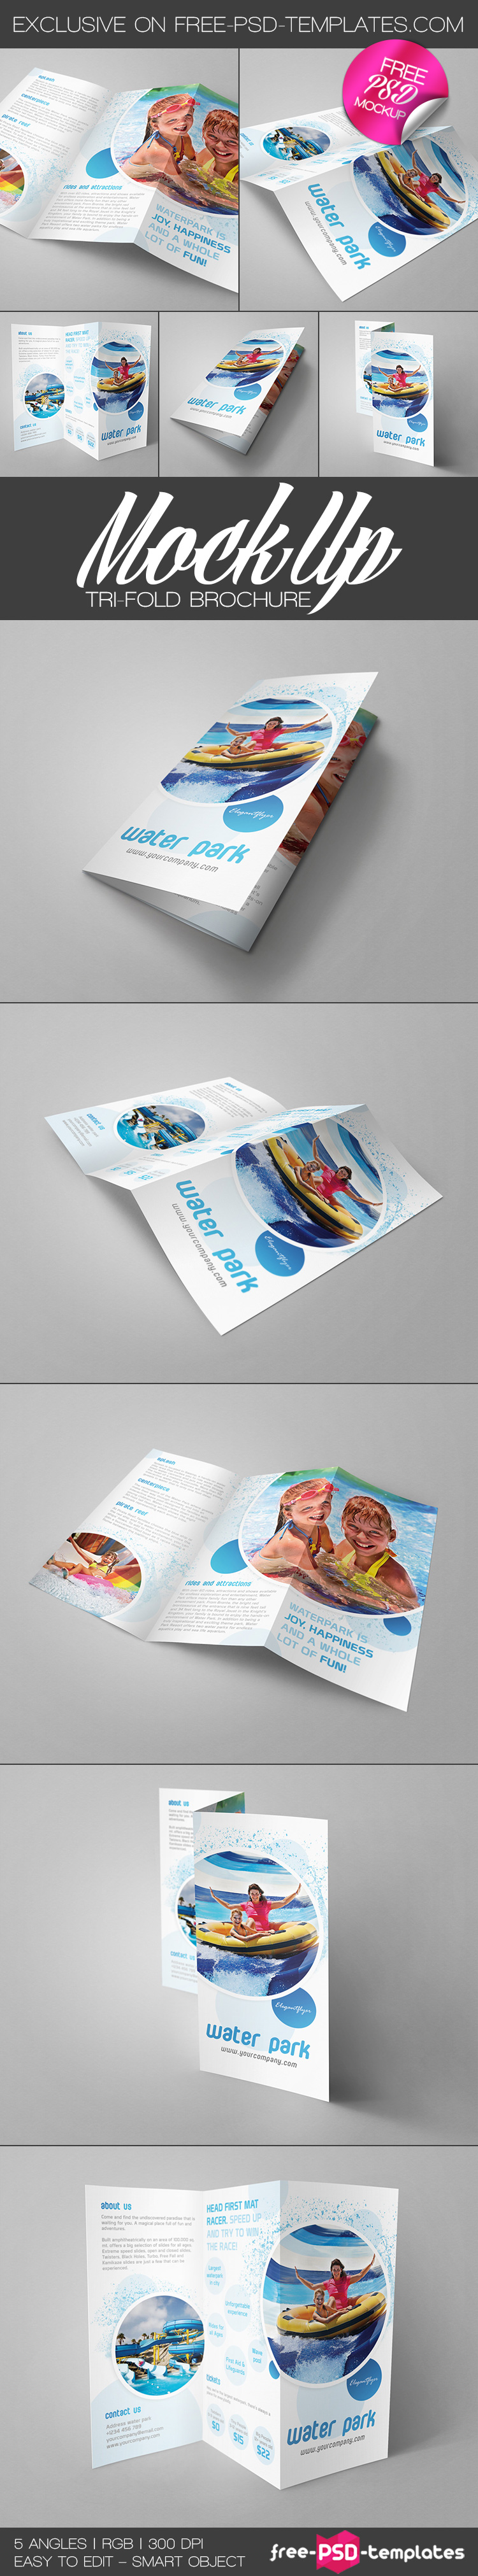 Mockup trifold brochure free mockup template in psd for Brochure design psd templates